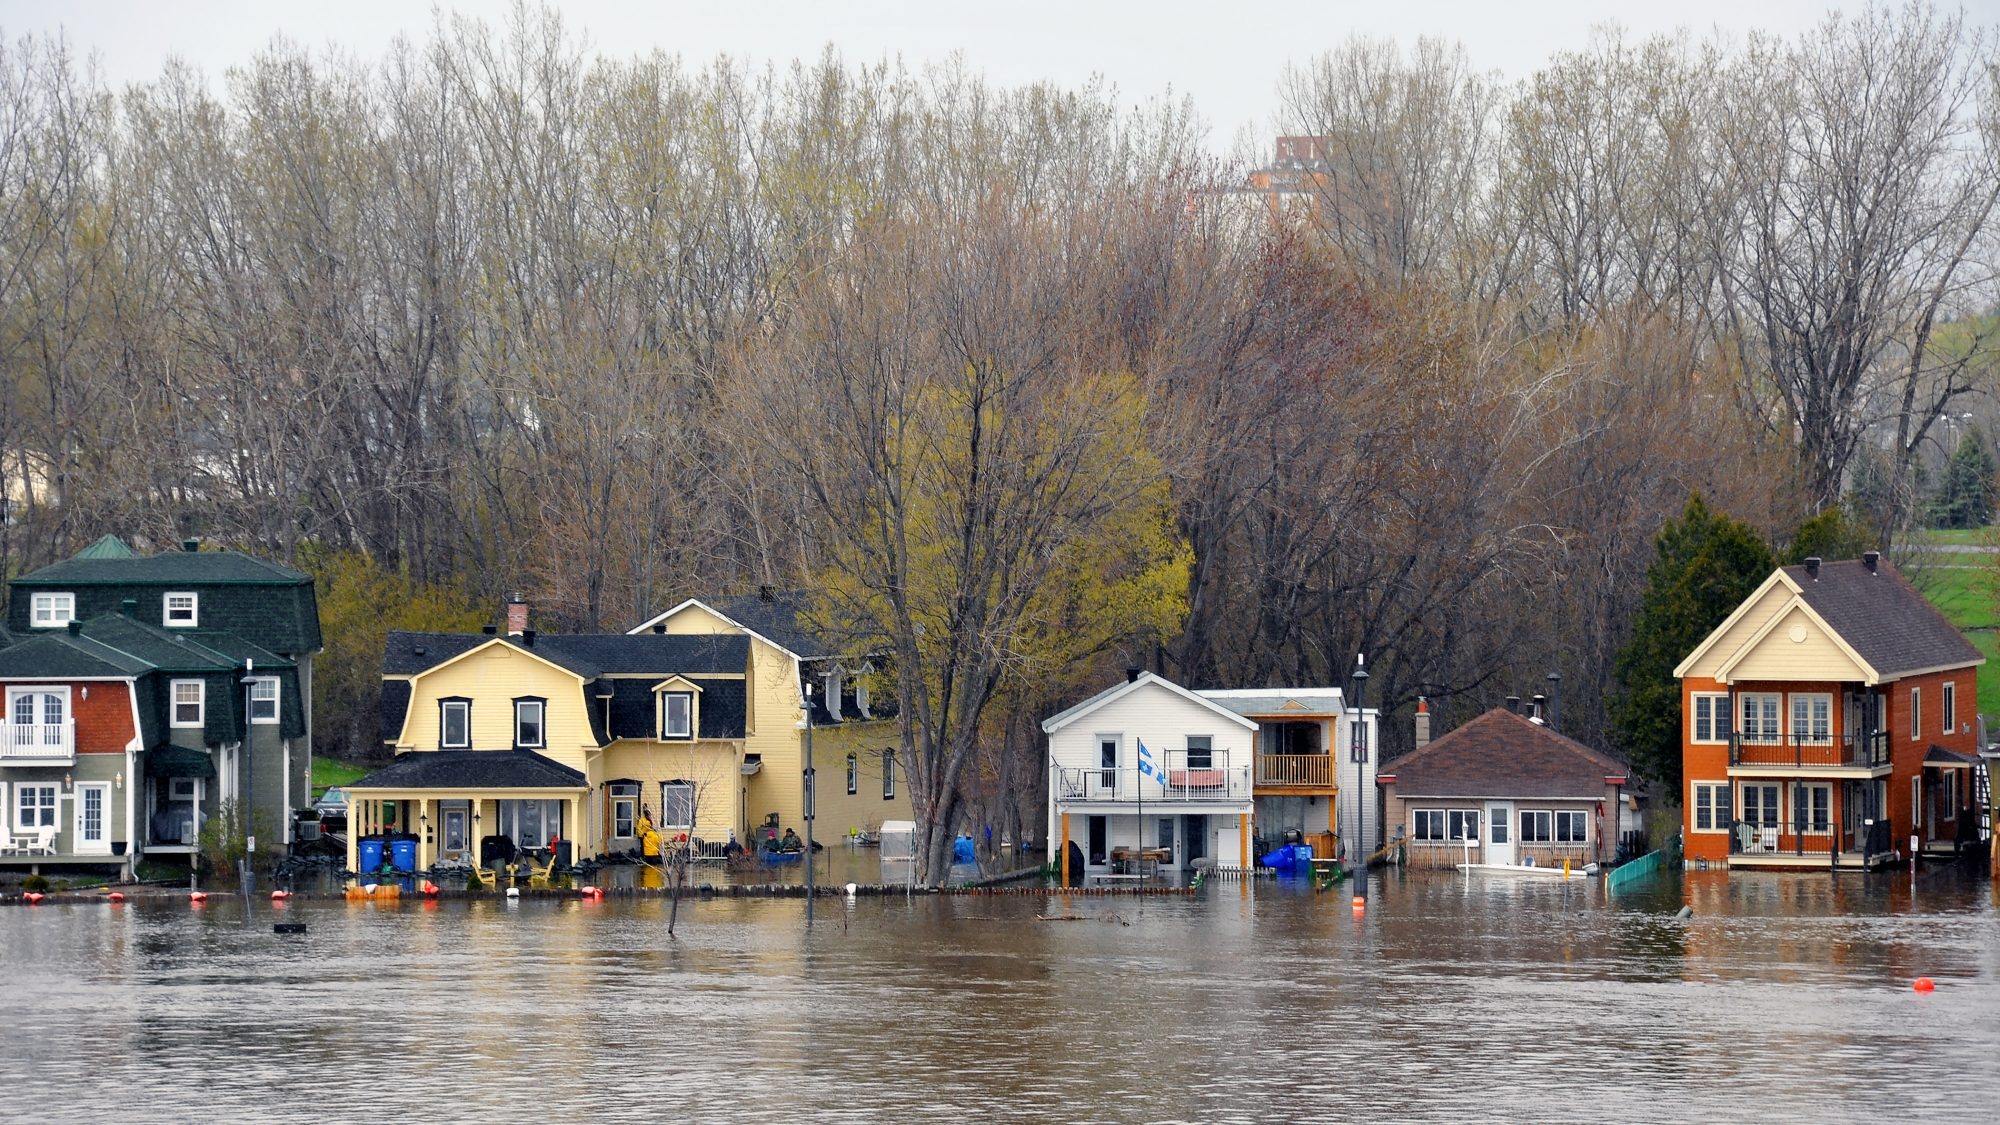 Paul McKinnon Gatineau, Canada - May 8, 2017: The severe flooding on the Quebec side of the swollen Ottawa River. Pointe Gatineau is one of several areas in North America that has suffered flood conditions.